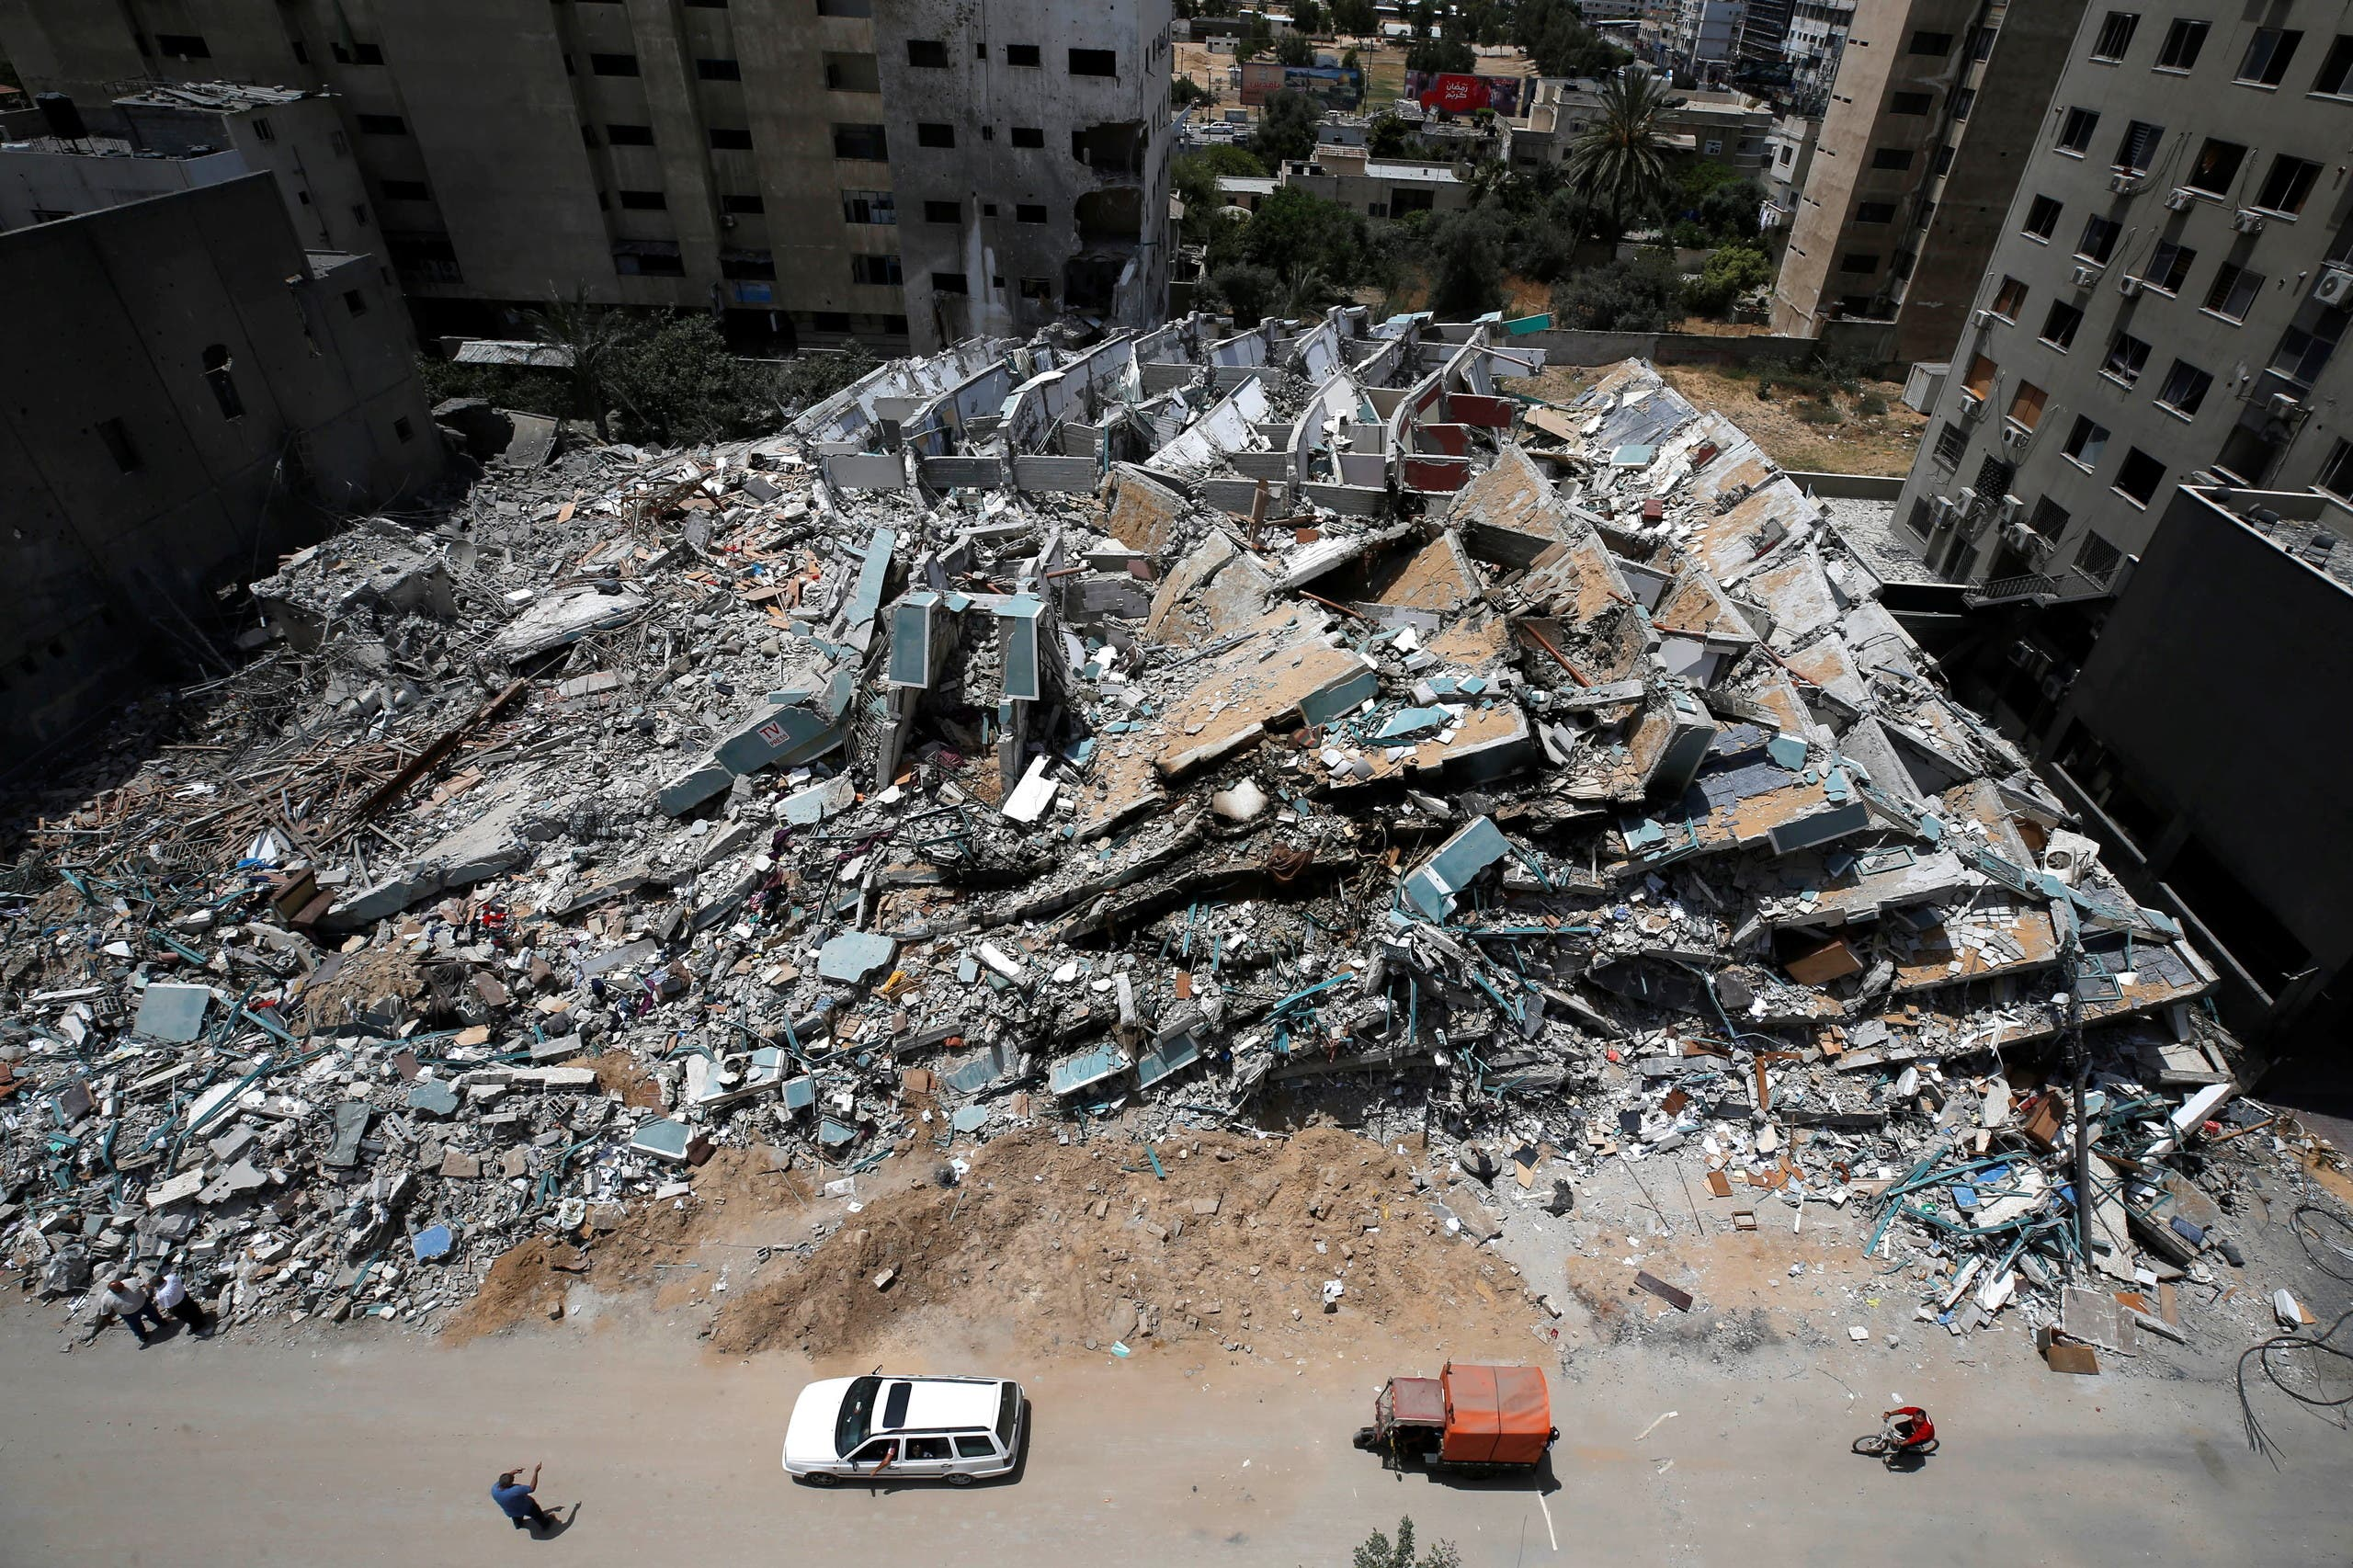 Destruction is the predominant scene in Gaza after 11 days of bombing